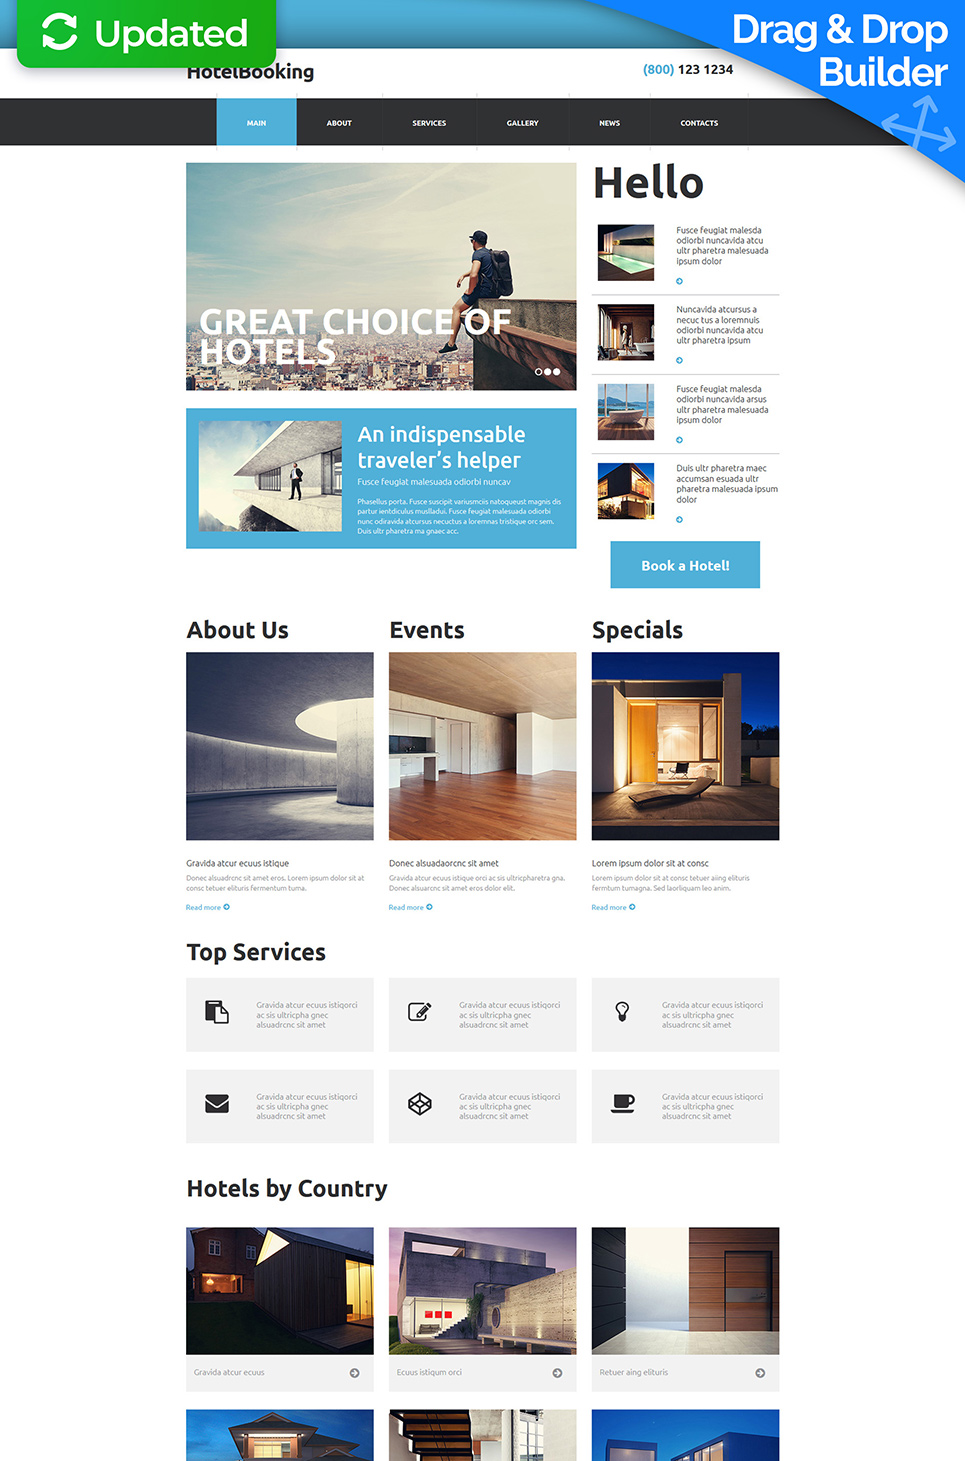 Hotel Booking Website Template - image